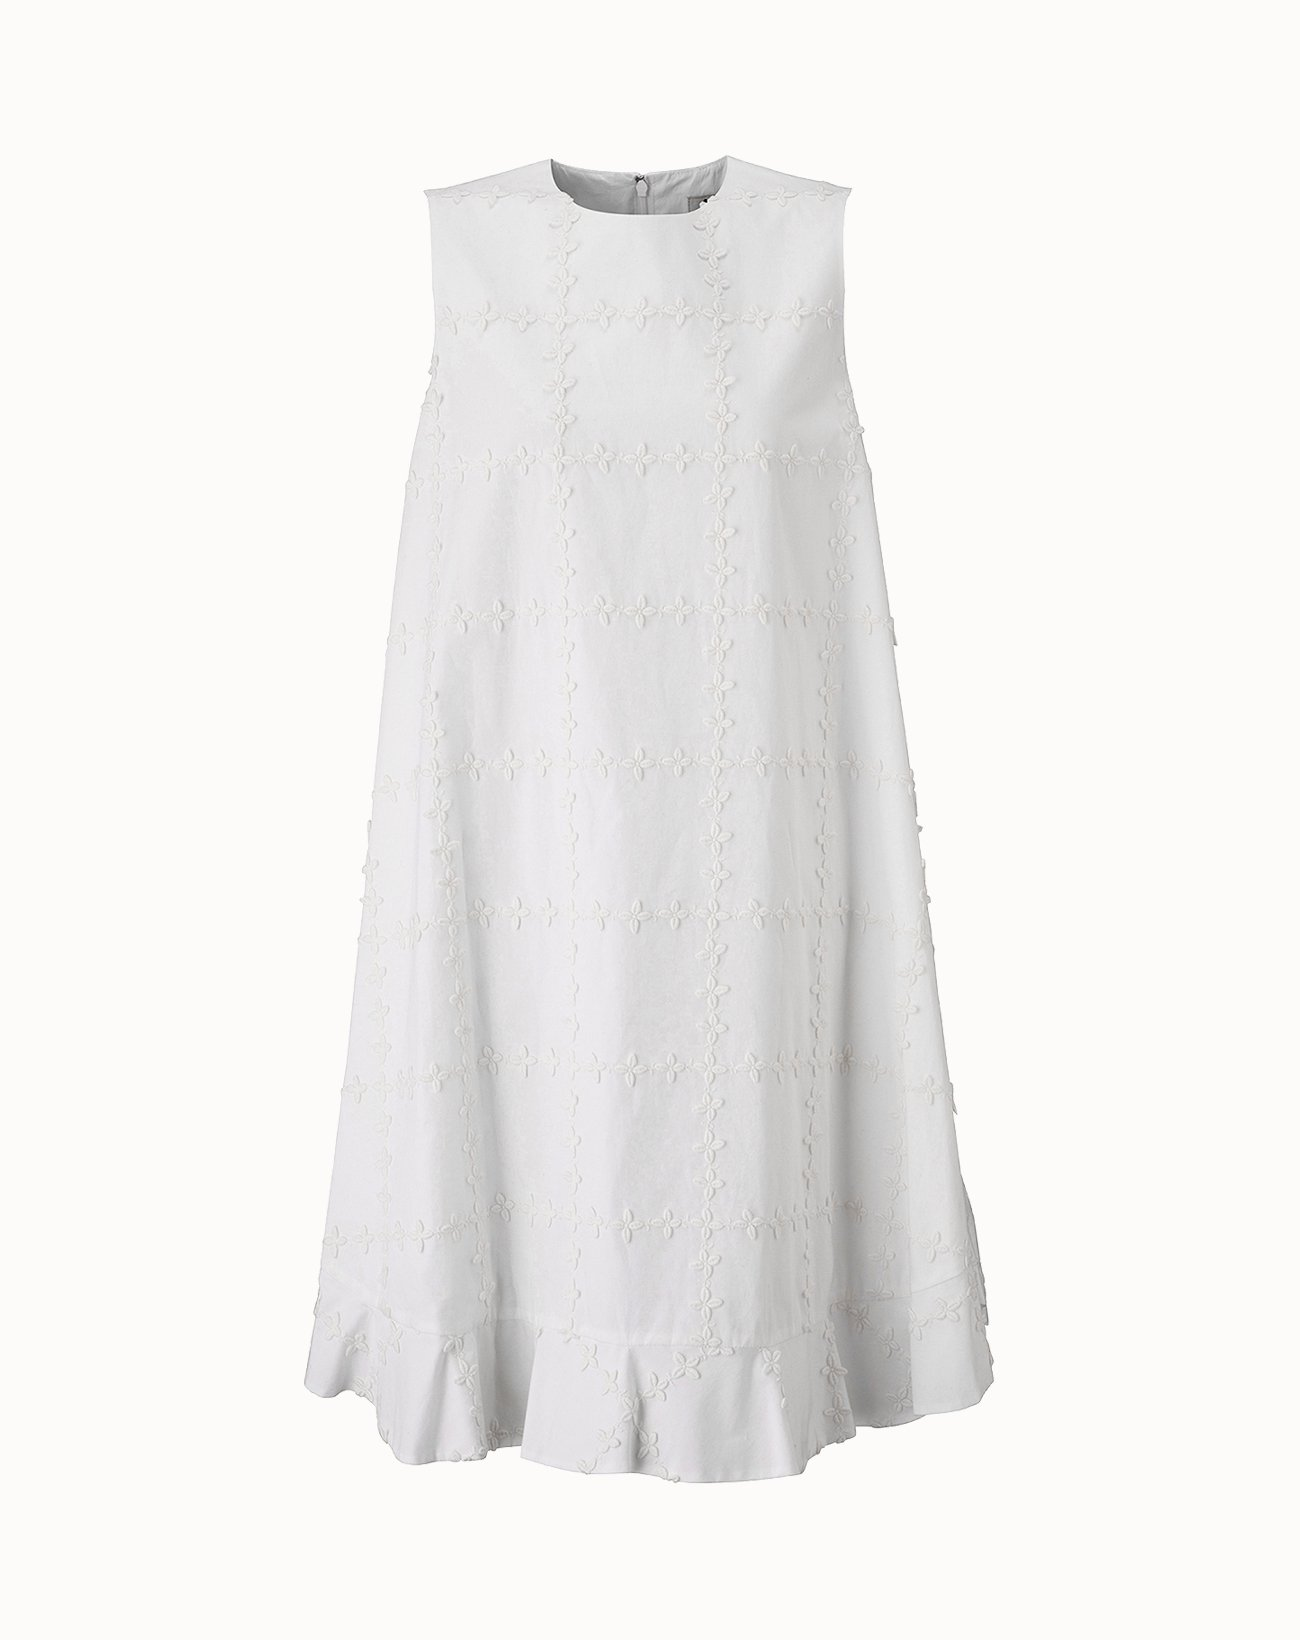 leur logette - Check Flower Embroidery Dress - White